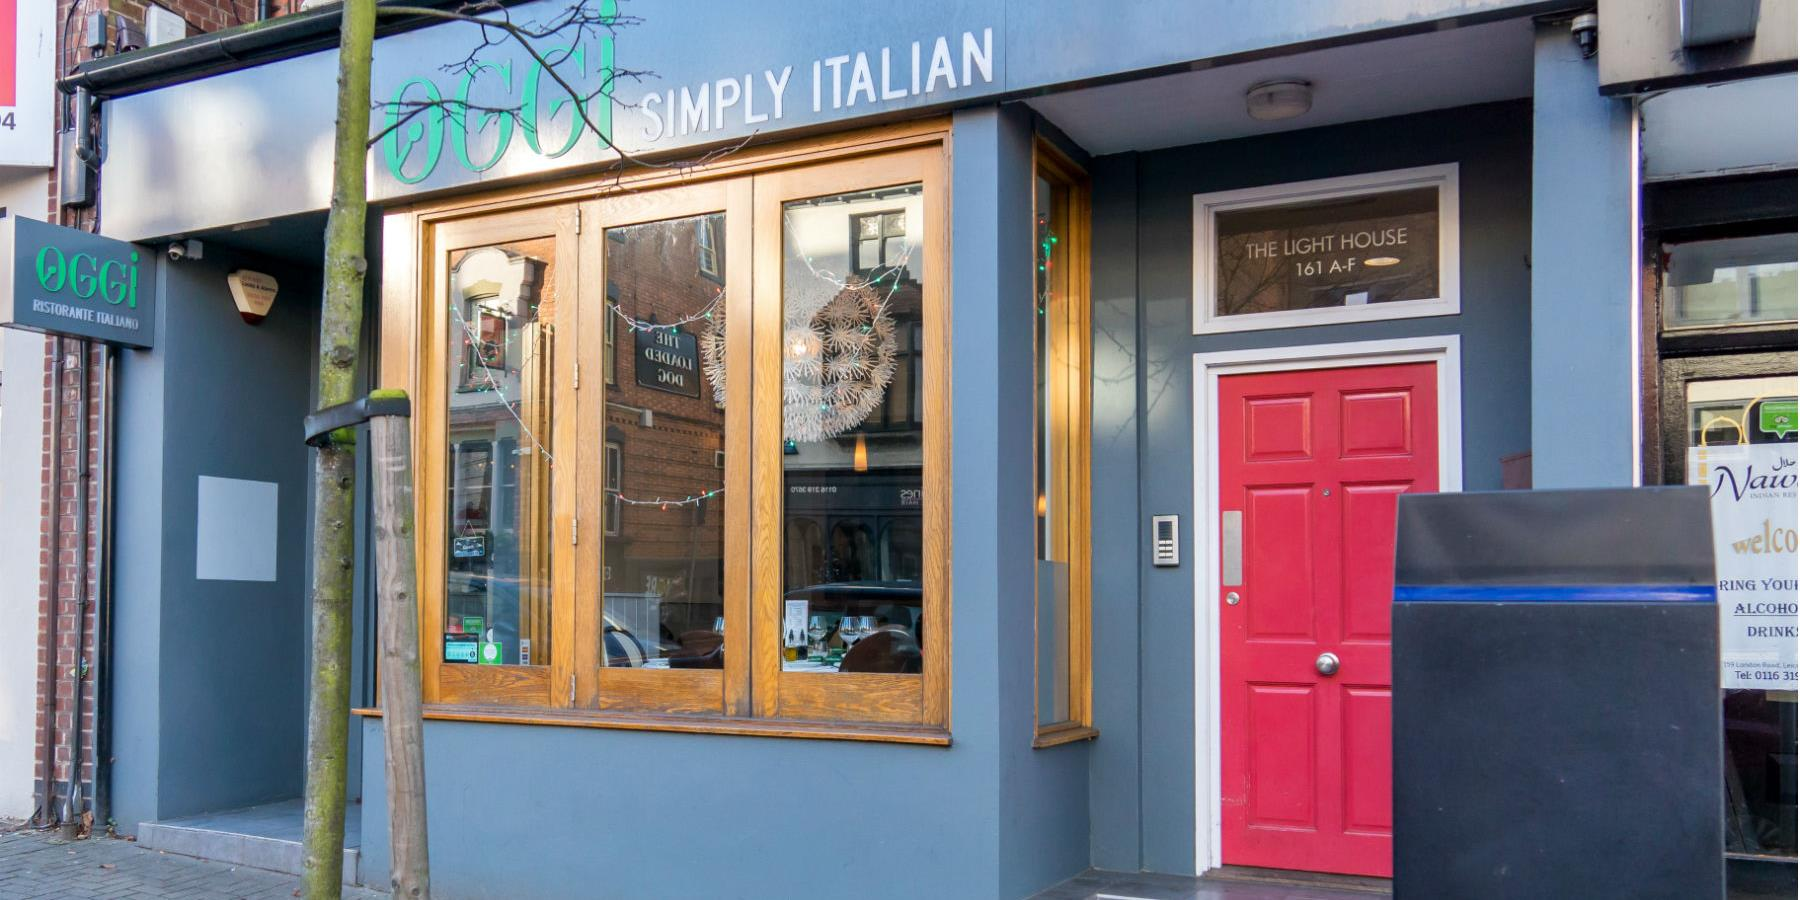 OGGI Simply Italian, Restaurants - Eating and Drinking in Leicester